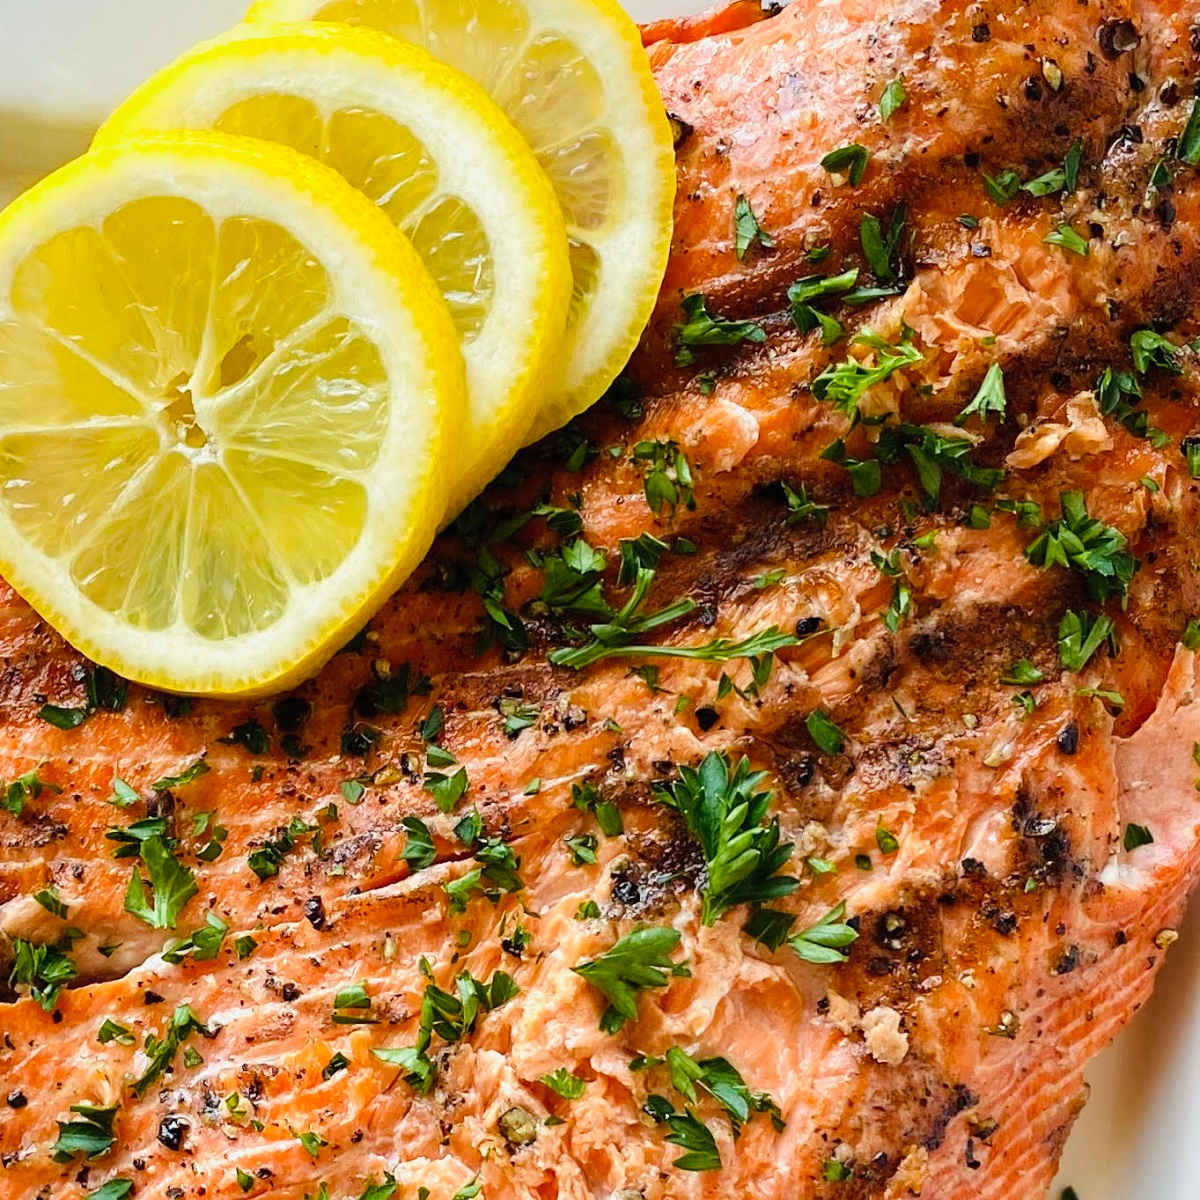 grilled wild caught sockeye salmon garnished with lemon and parsley